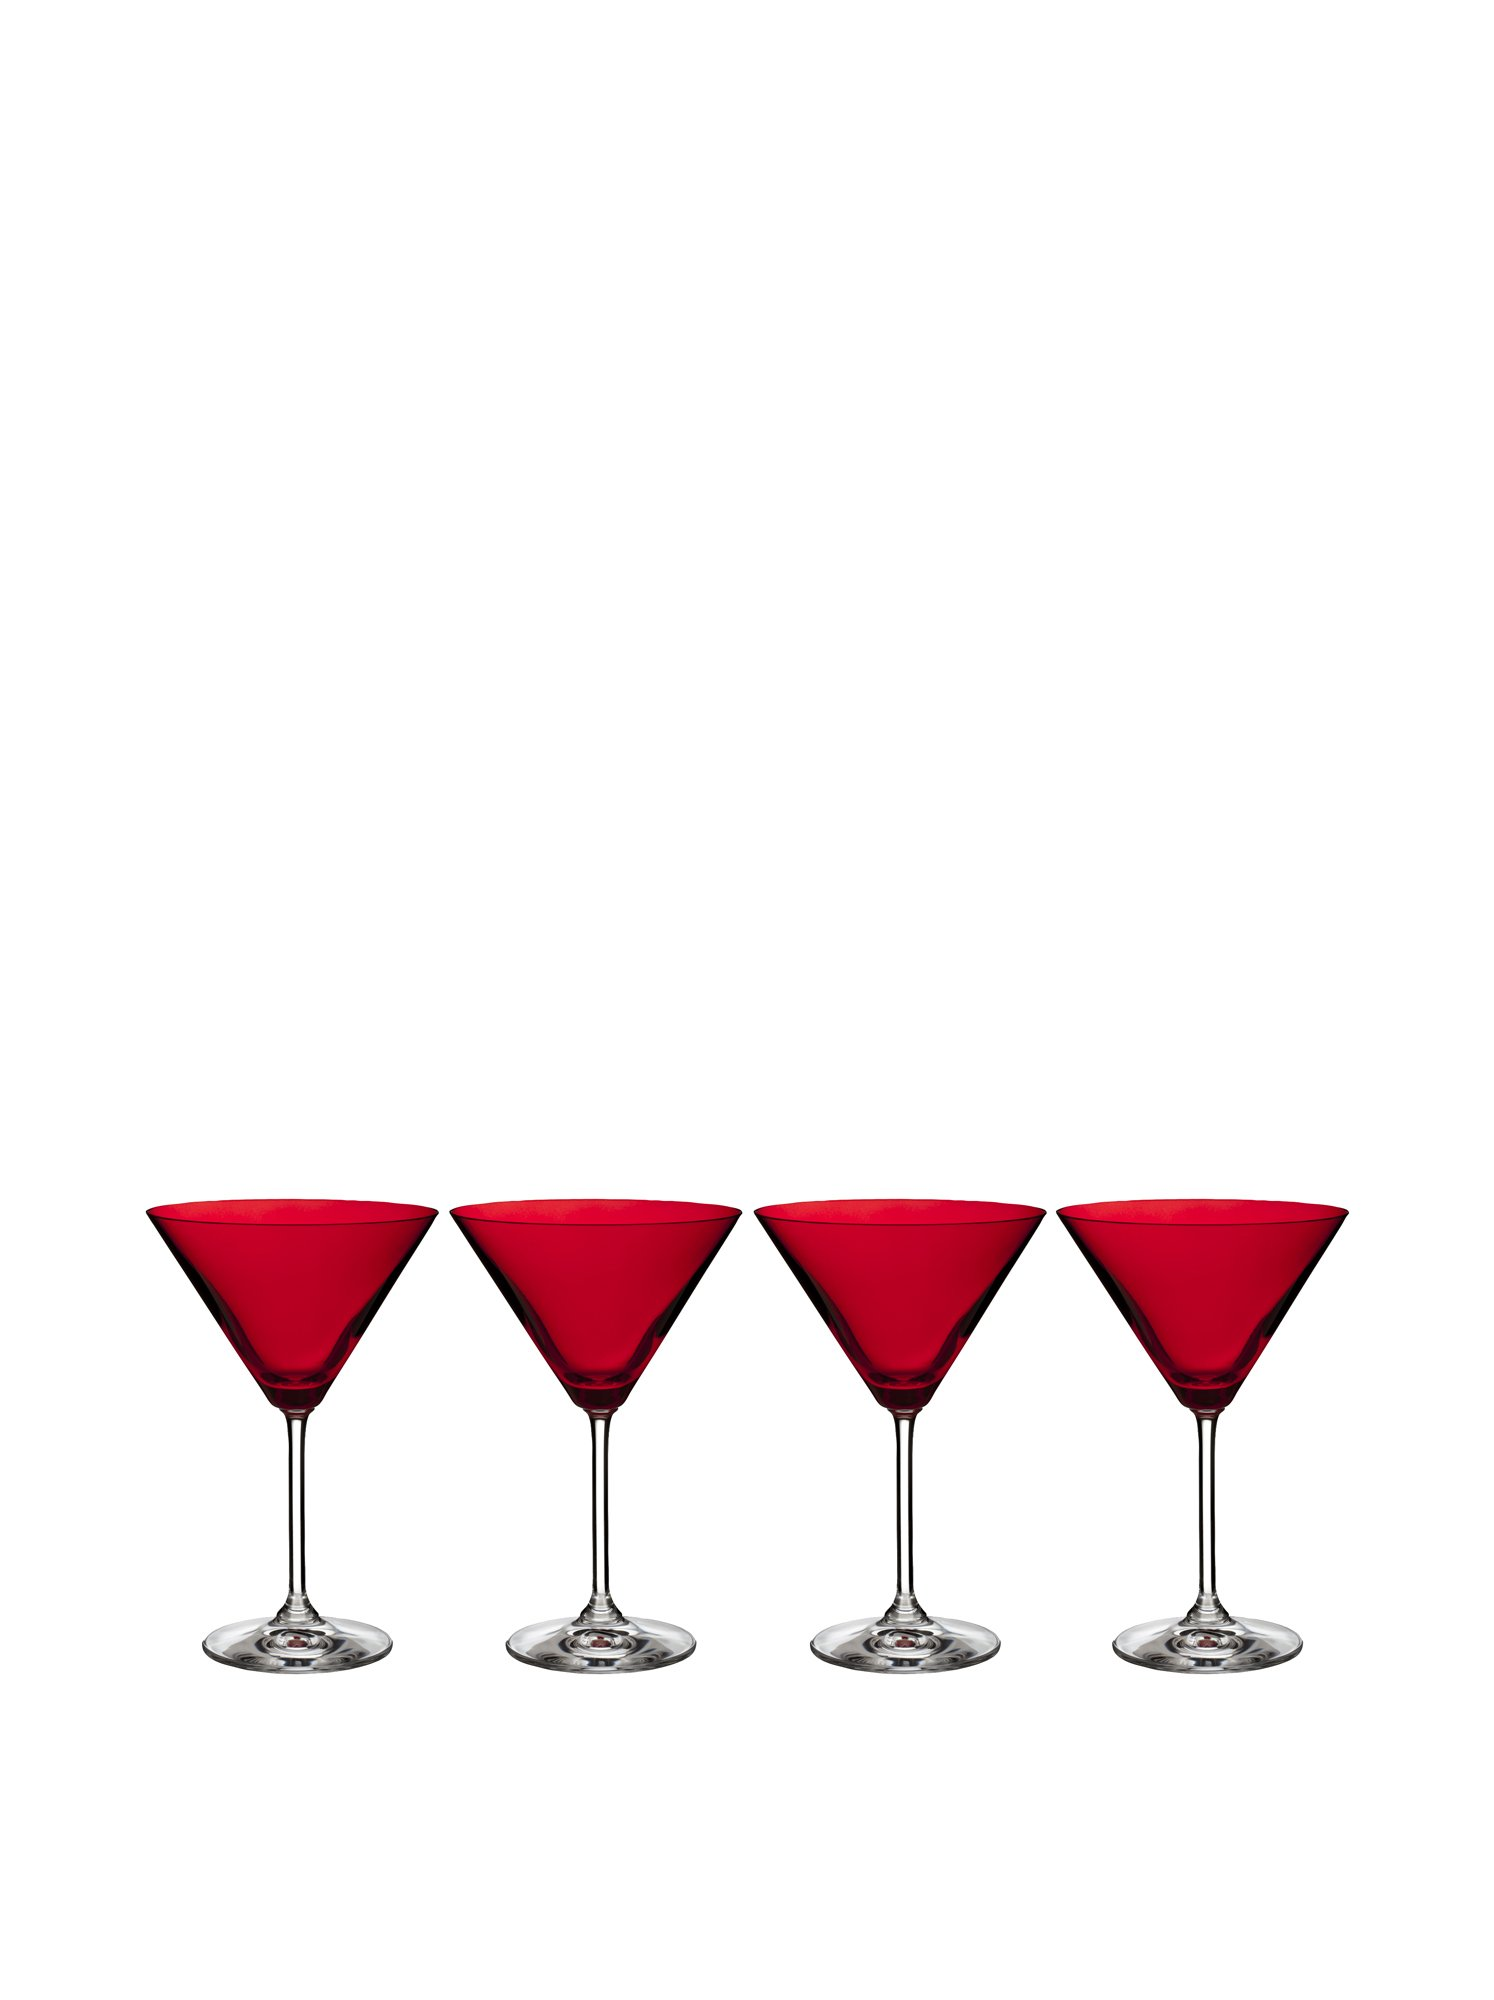 Marquis by Waterford Vintage Martini Glass, Red, Set of 4